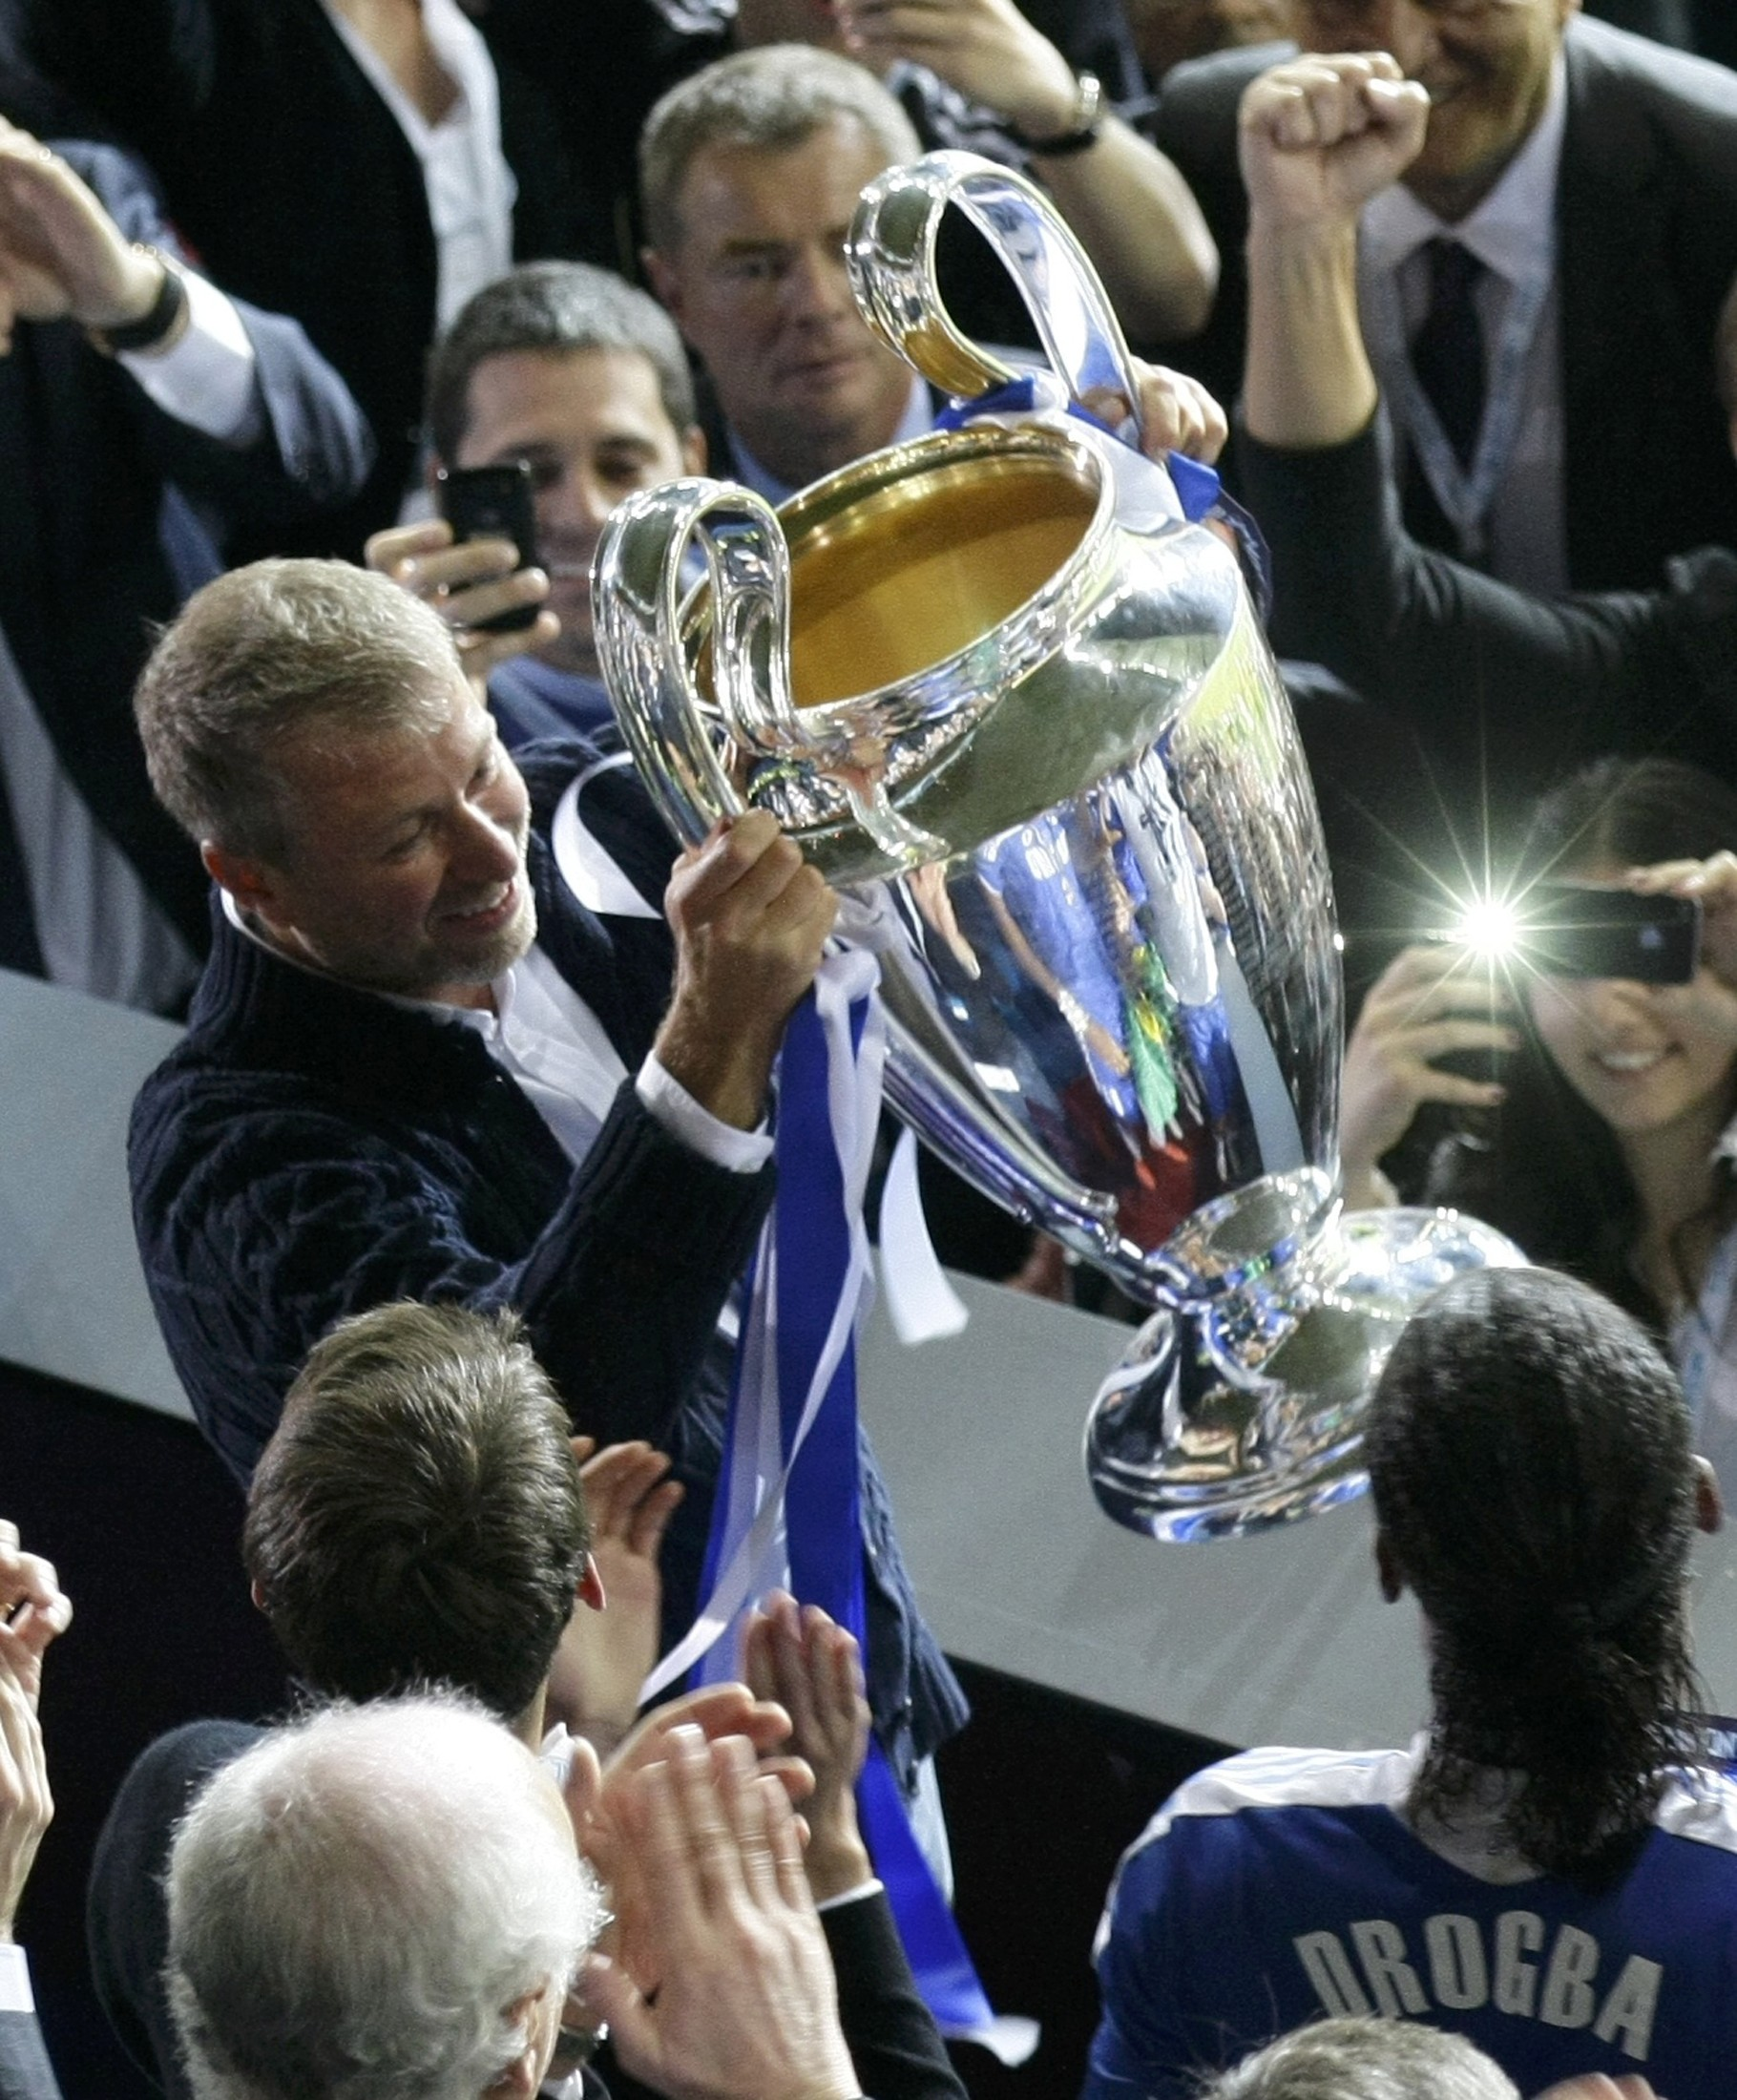 Chelsea owner Roman Abramovich lifts the UEFA Champions League trophy. (Reuters)